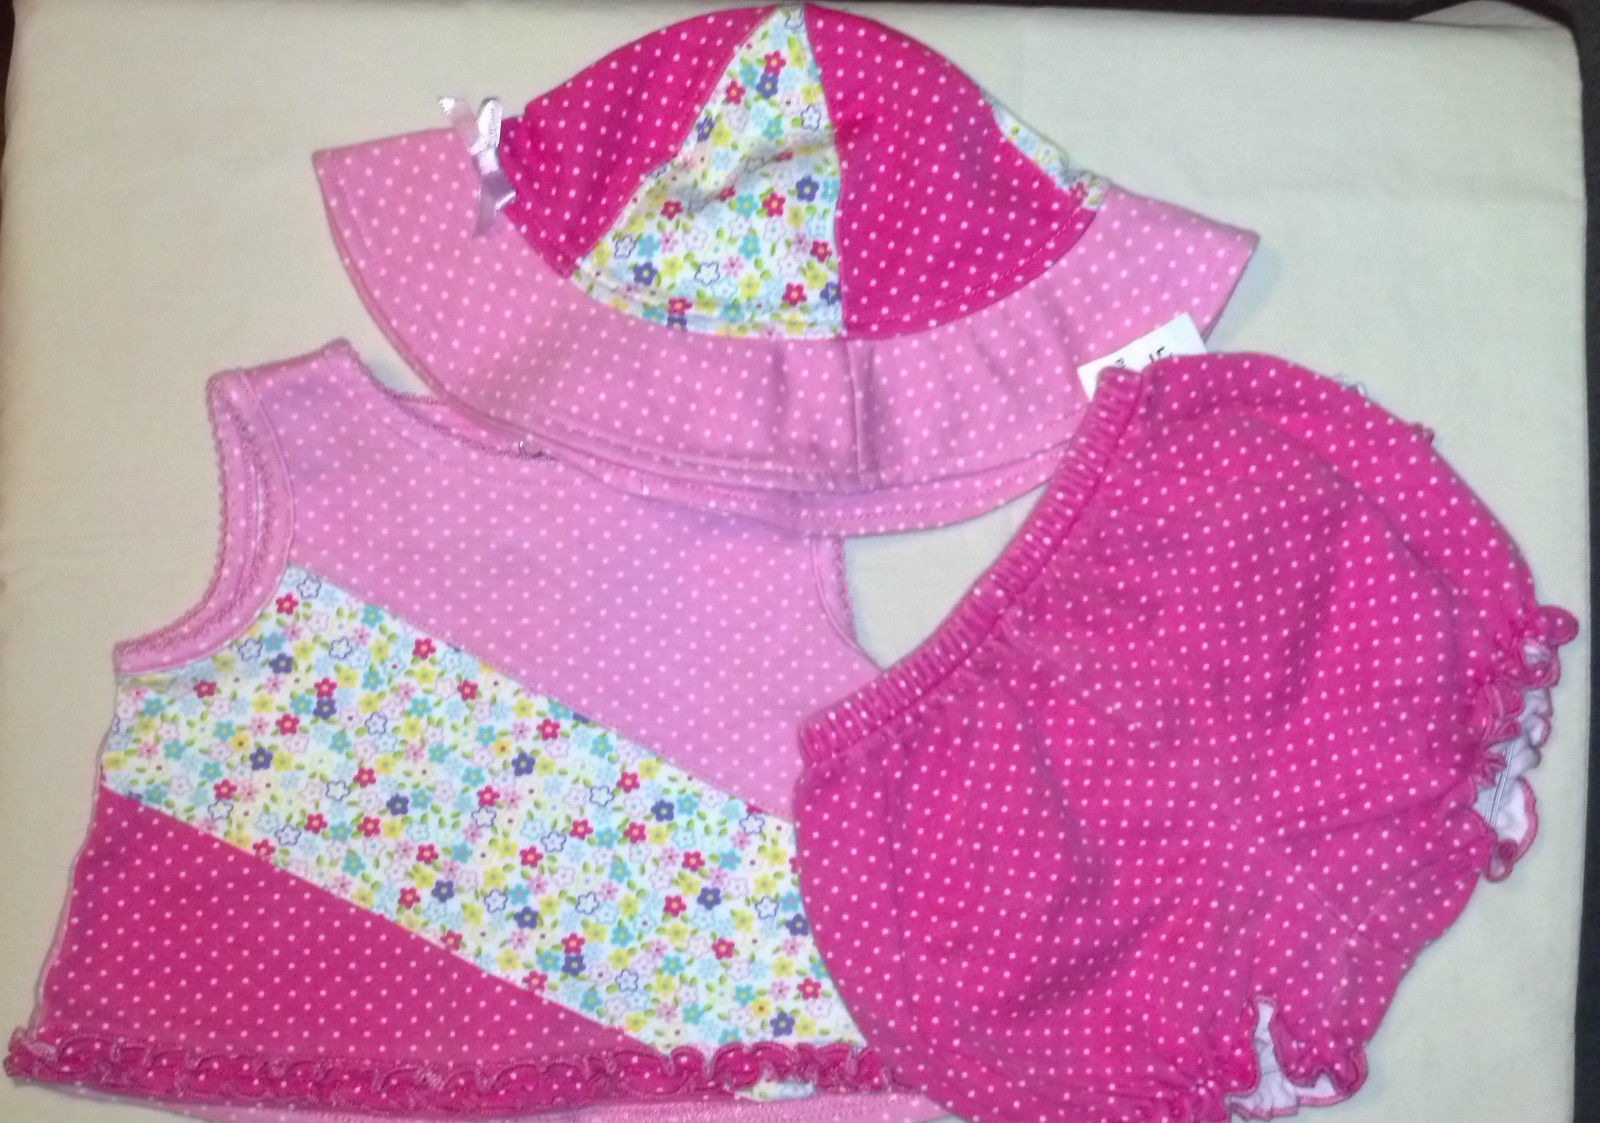 CUTE Girl's Size 6 M 3-6 Months 3 Piece Pink Floral Ruffled Outfit  Little Me - $16.89